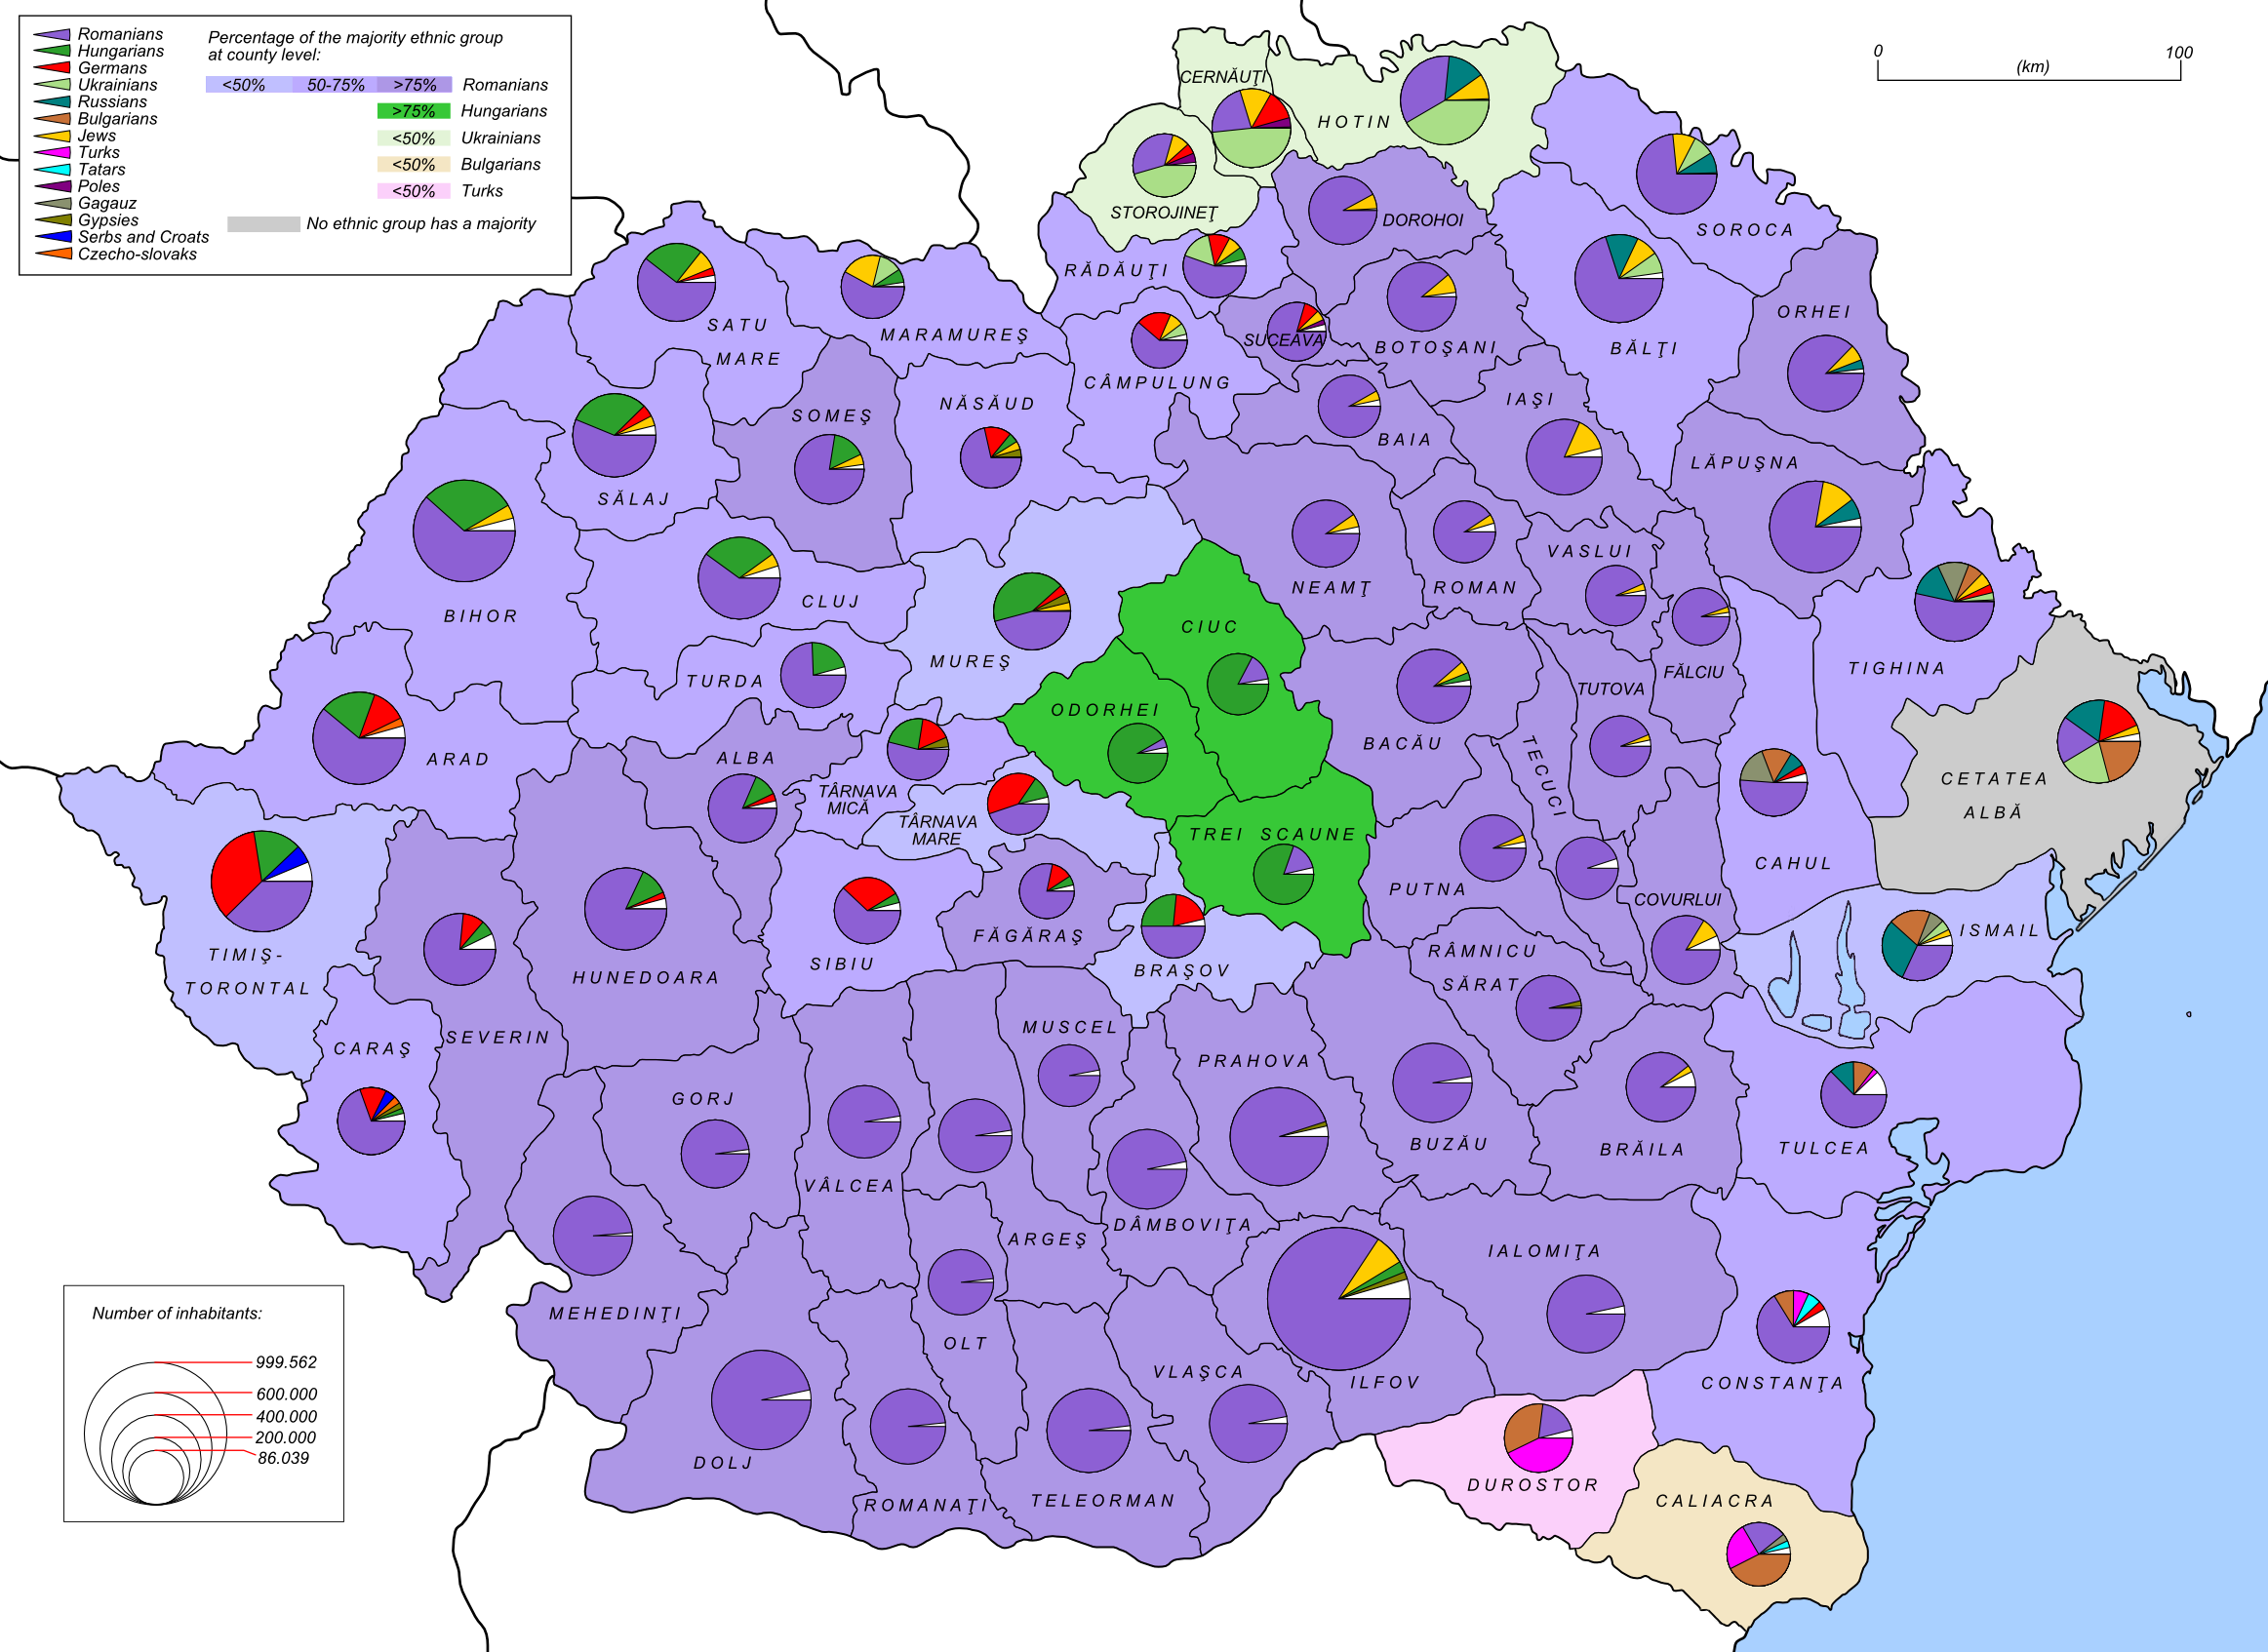 American Ethnicity Map Ethnic Map of Romania in 1930